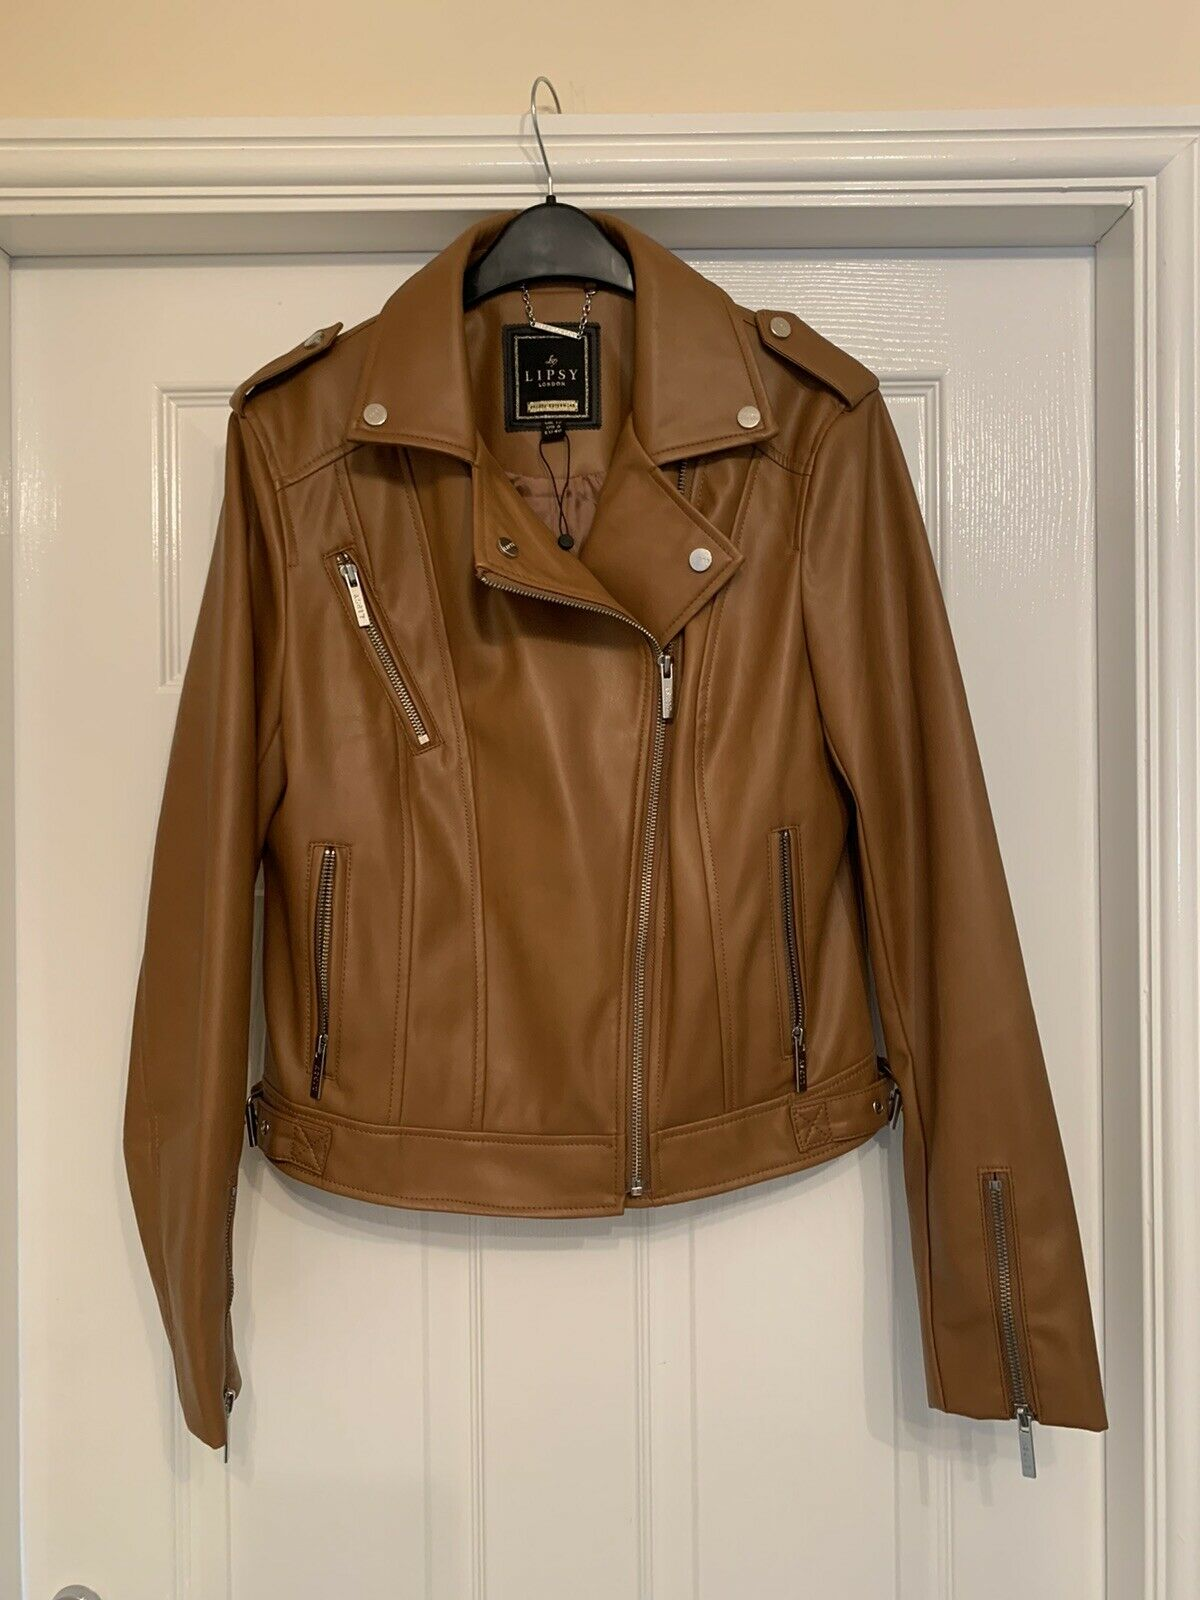 Lipsy London Tan Brown Leather Look Jacket - Size 12 - Silver Zips - VGC